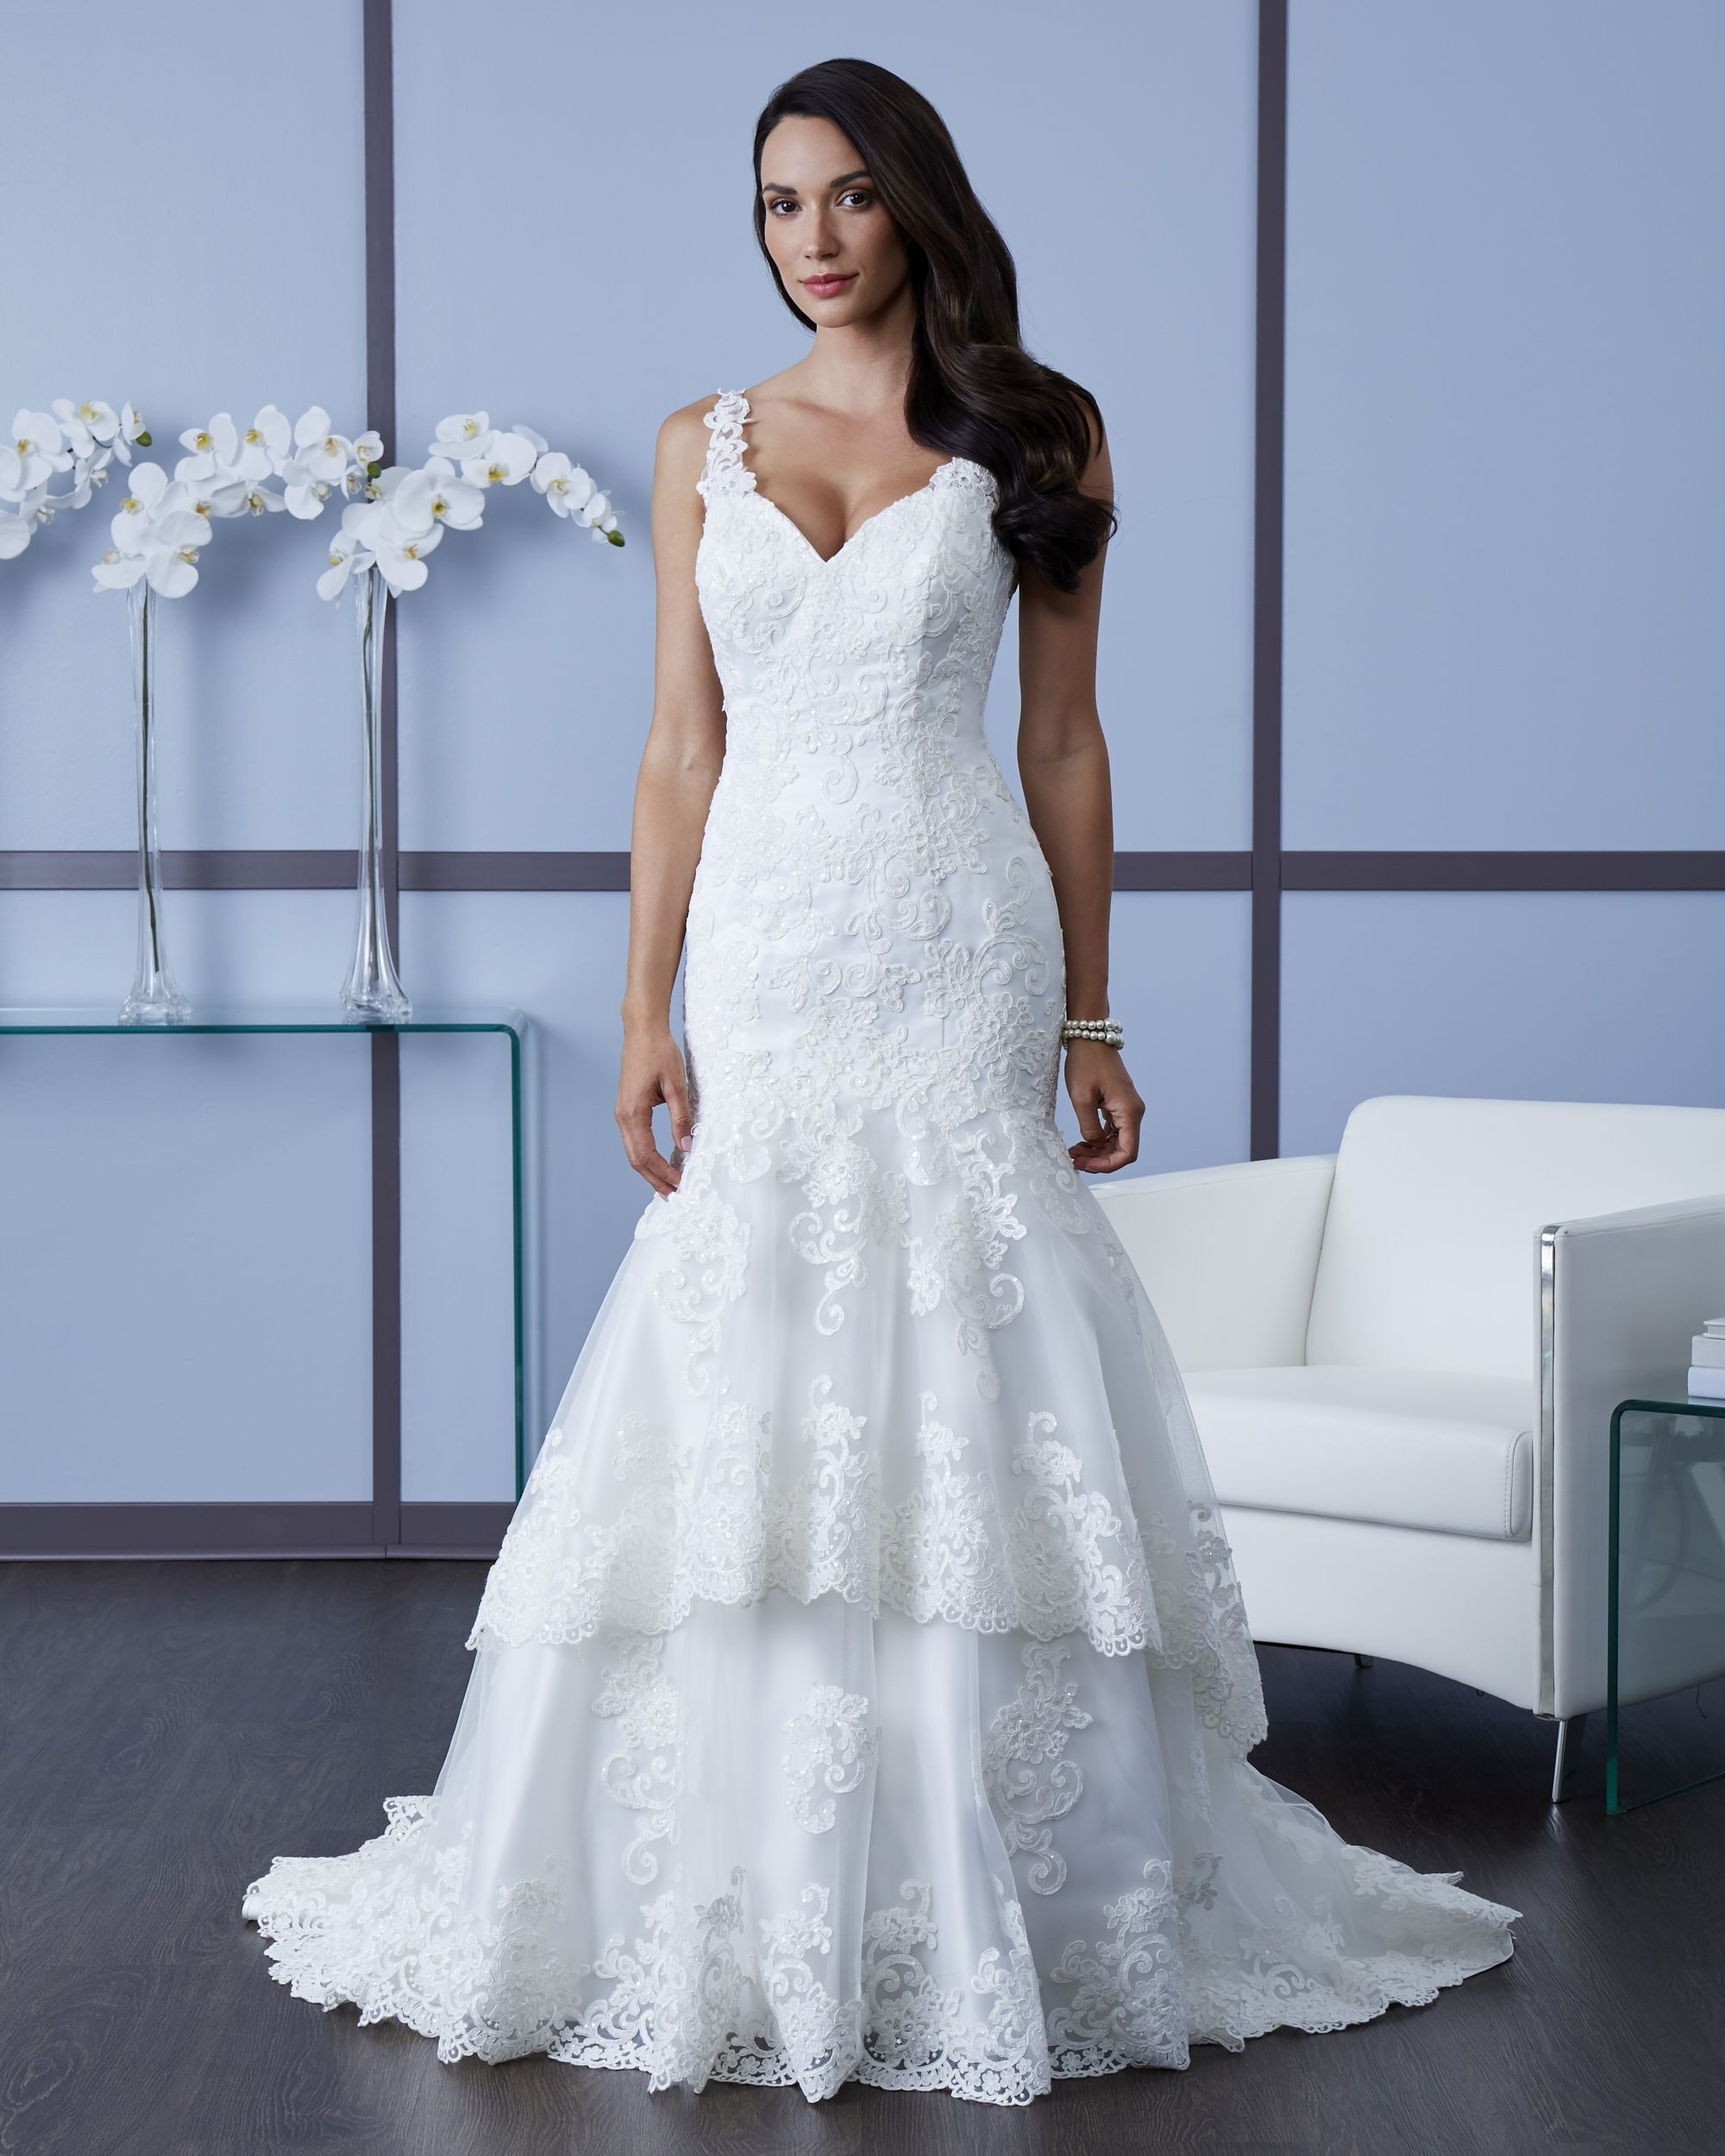 4601 | Romantic Bridals | Bridal Gowns and Prom Dresses |Toronto ...